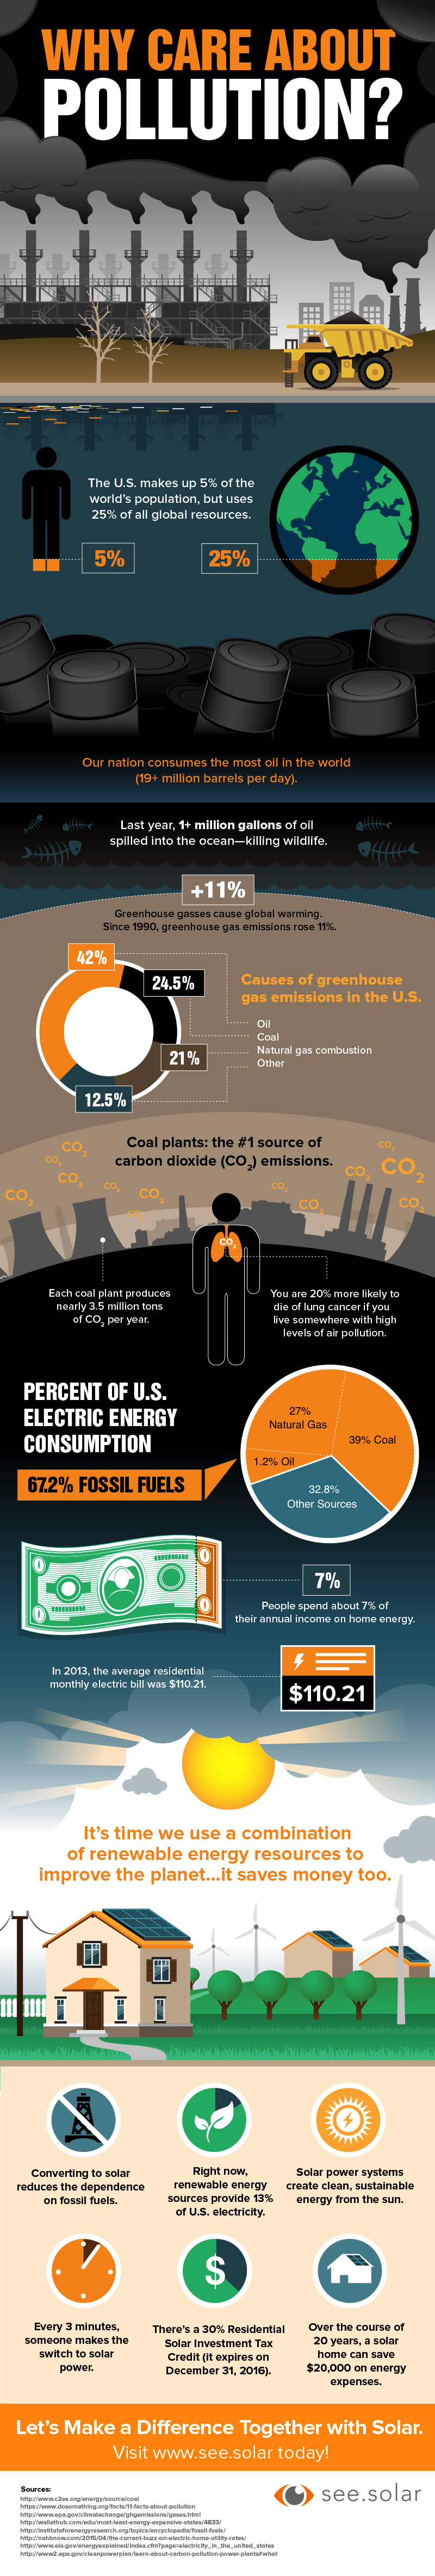 why-care-about-pollution-infograhpic